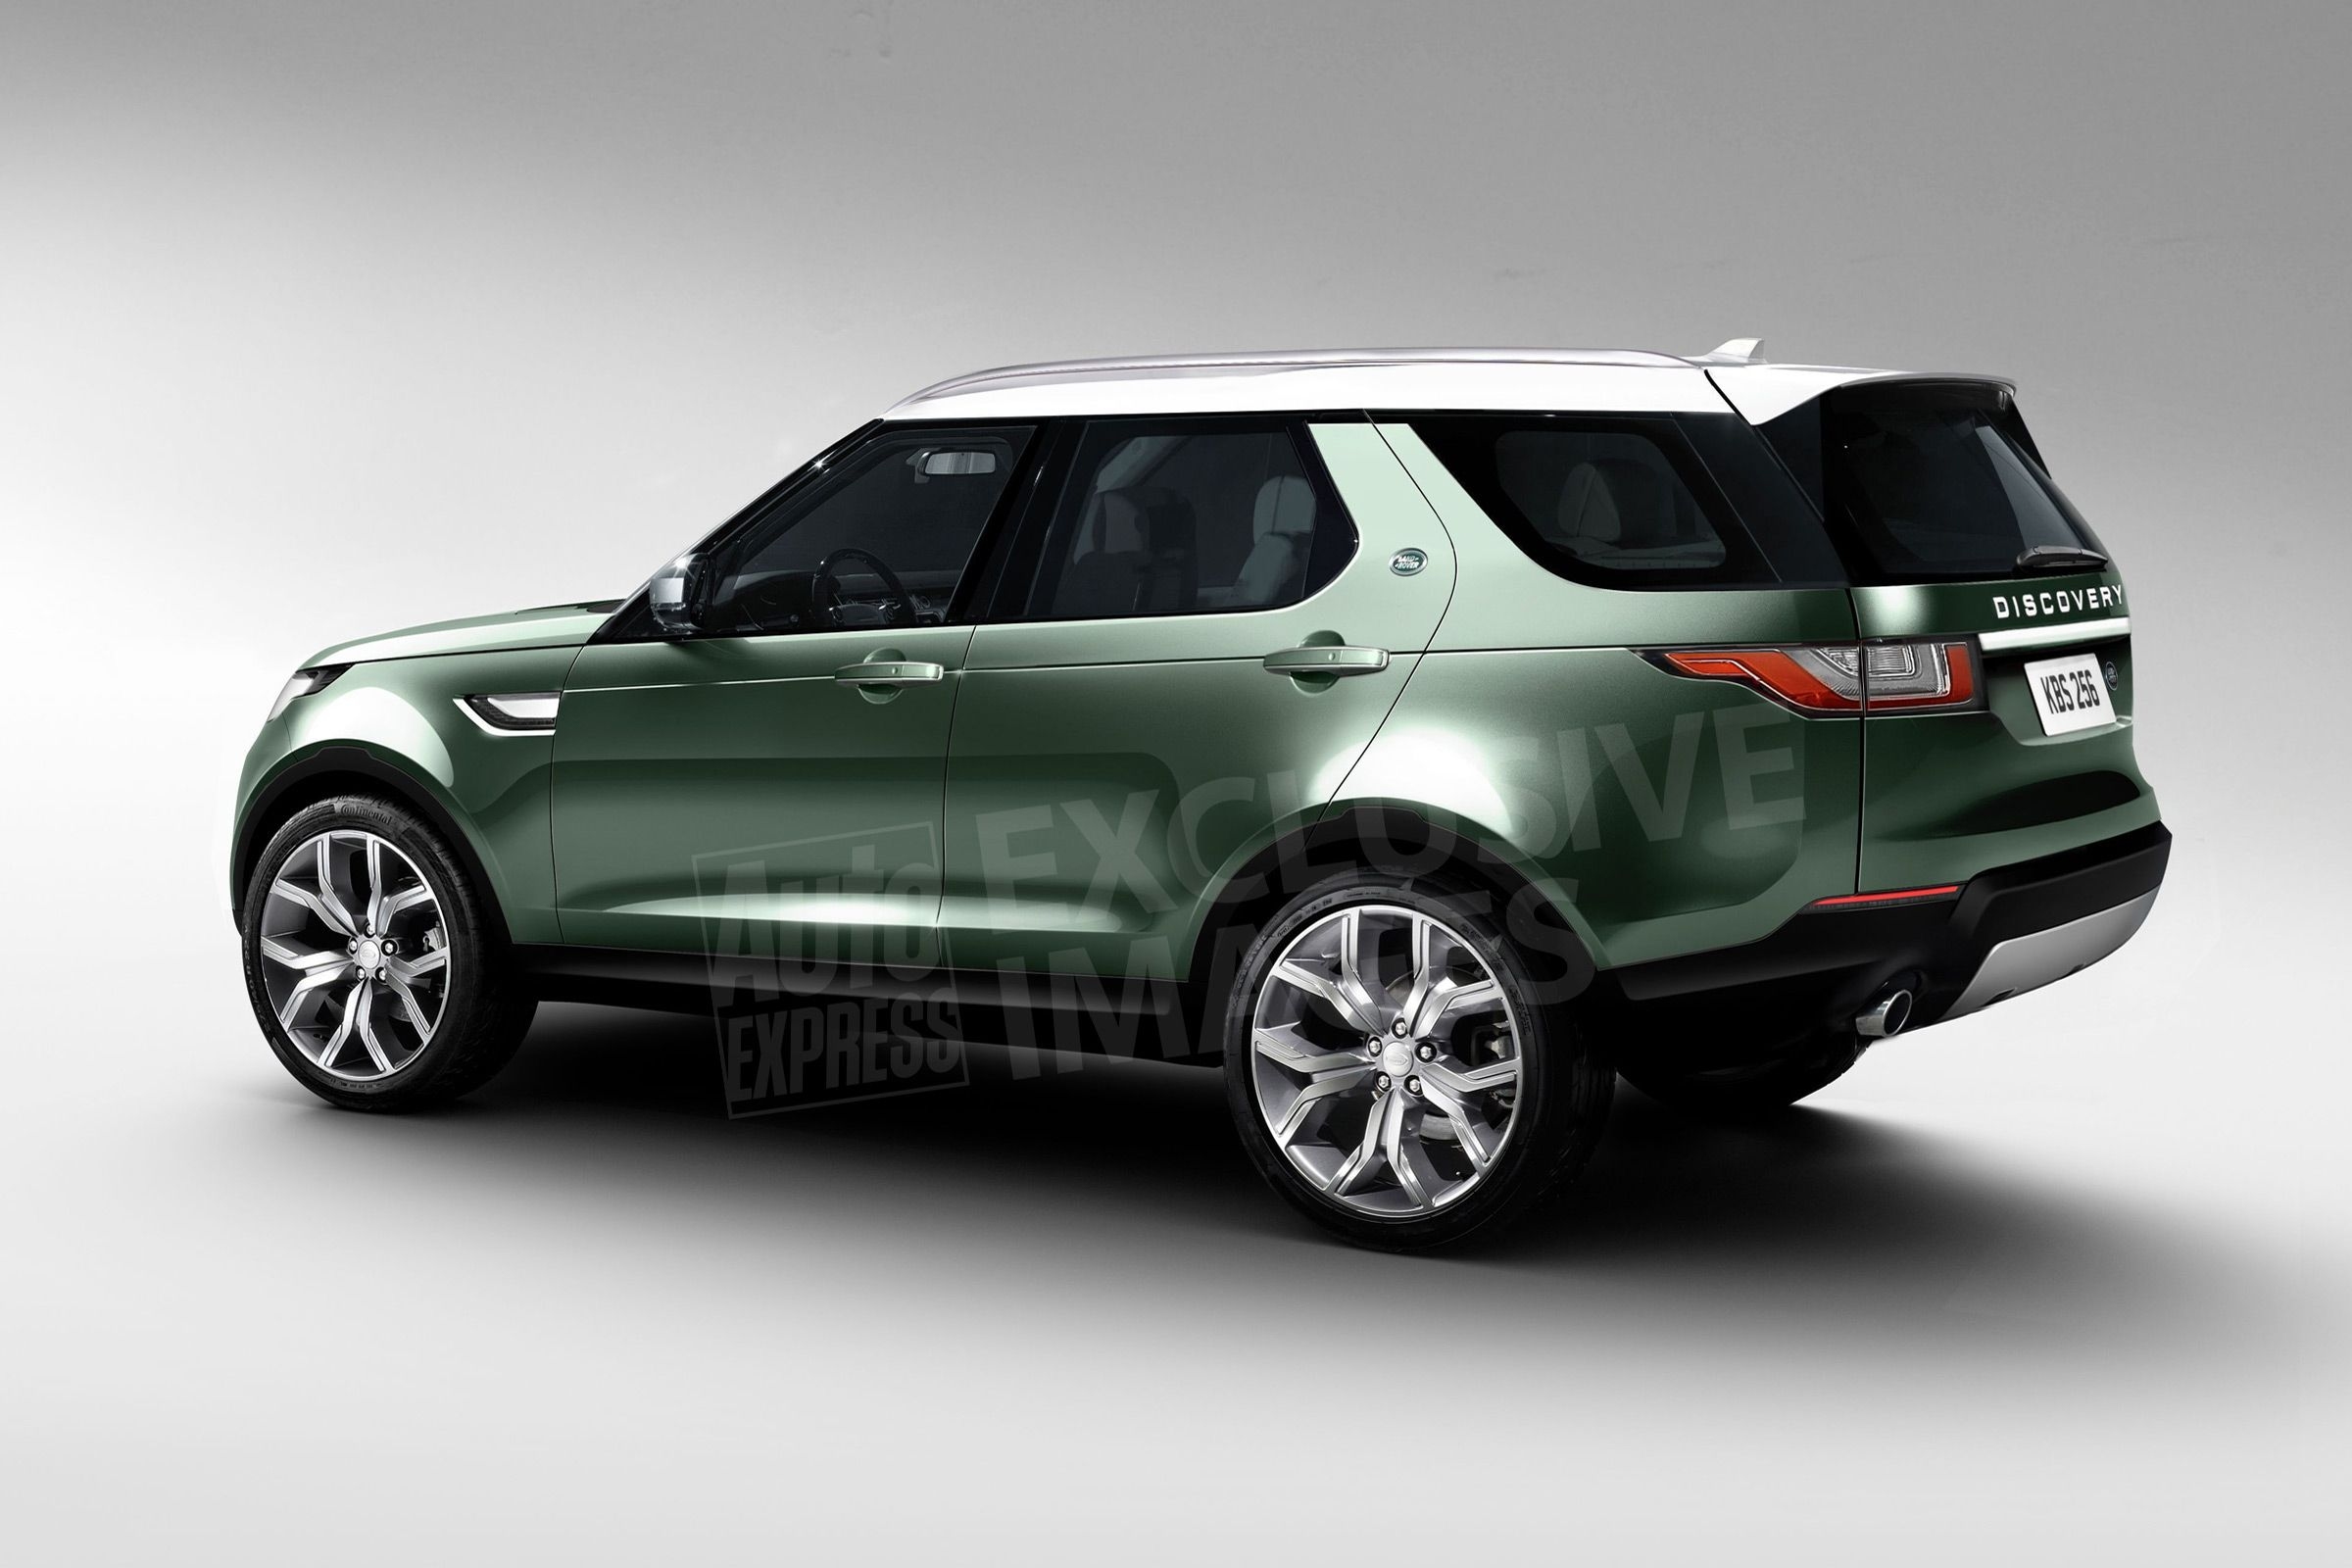 2018 discovery crawls into paris as land rover s most important new product in years land_rover land_rover_discovery sport ute cross pinterest